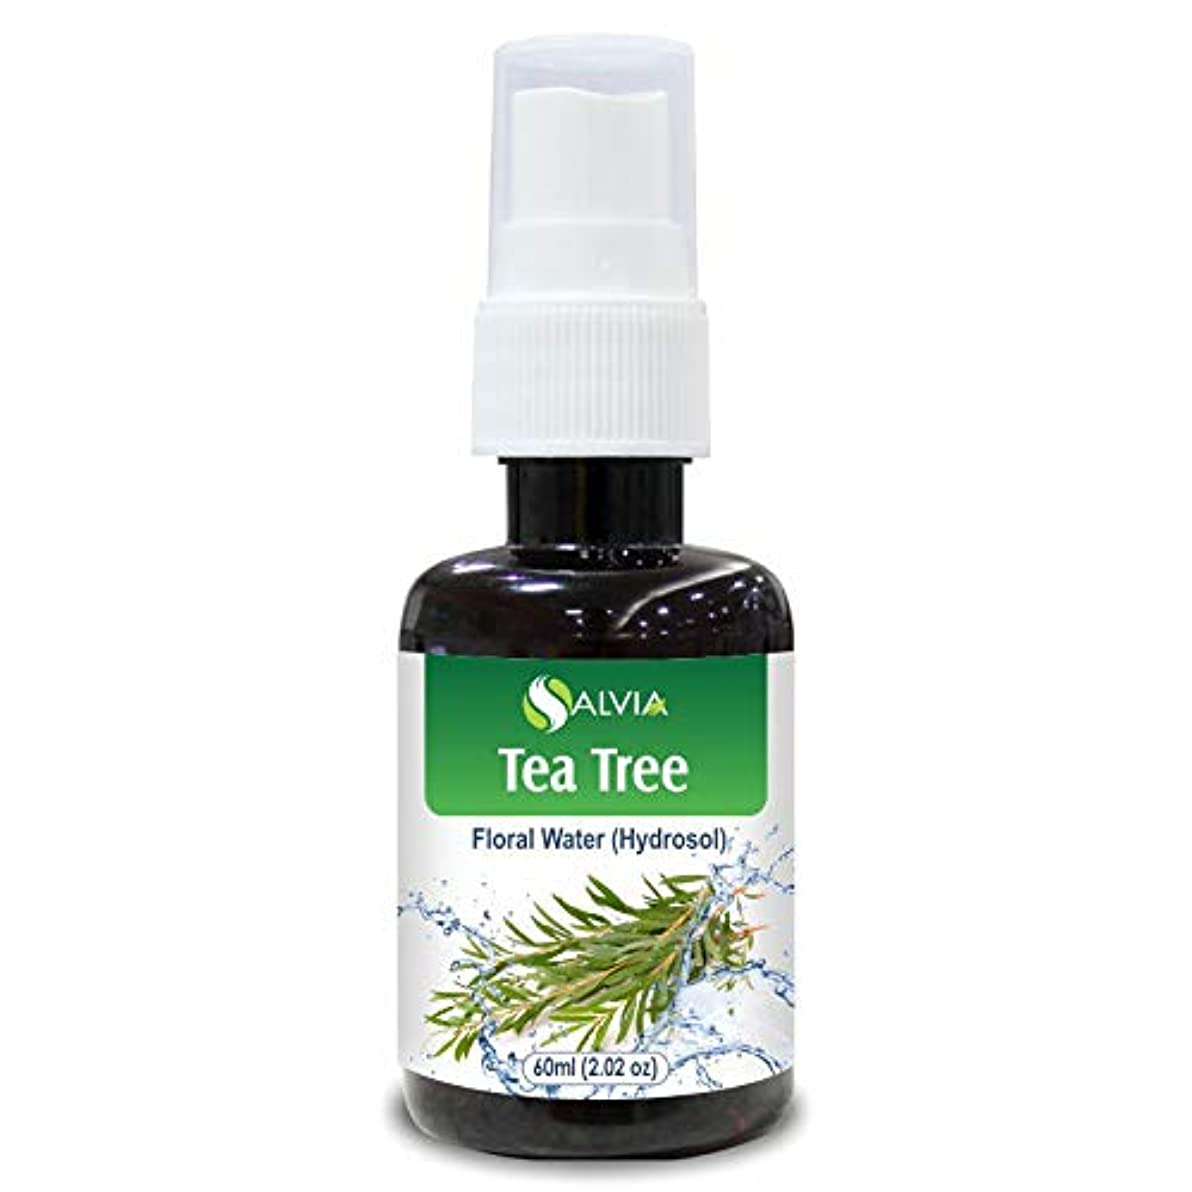 Tea Tree Floral Water 60ml (Hydrosol) 100% Pure And Natural